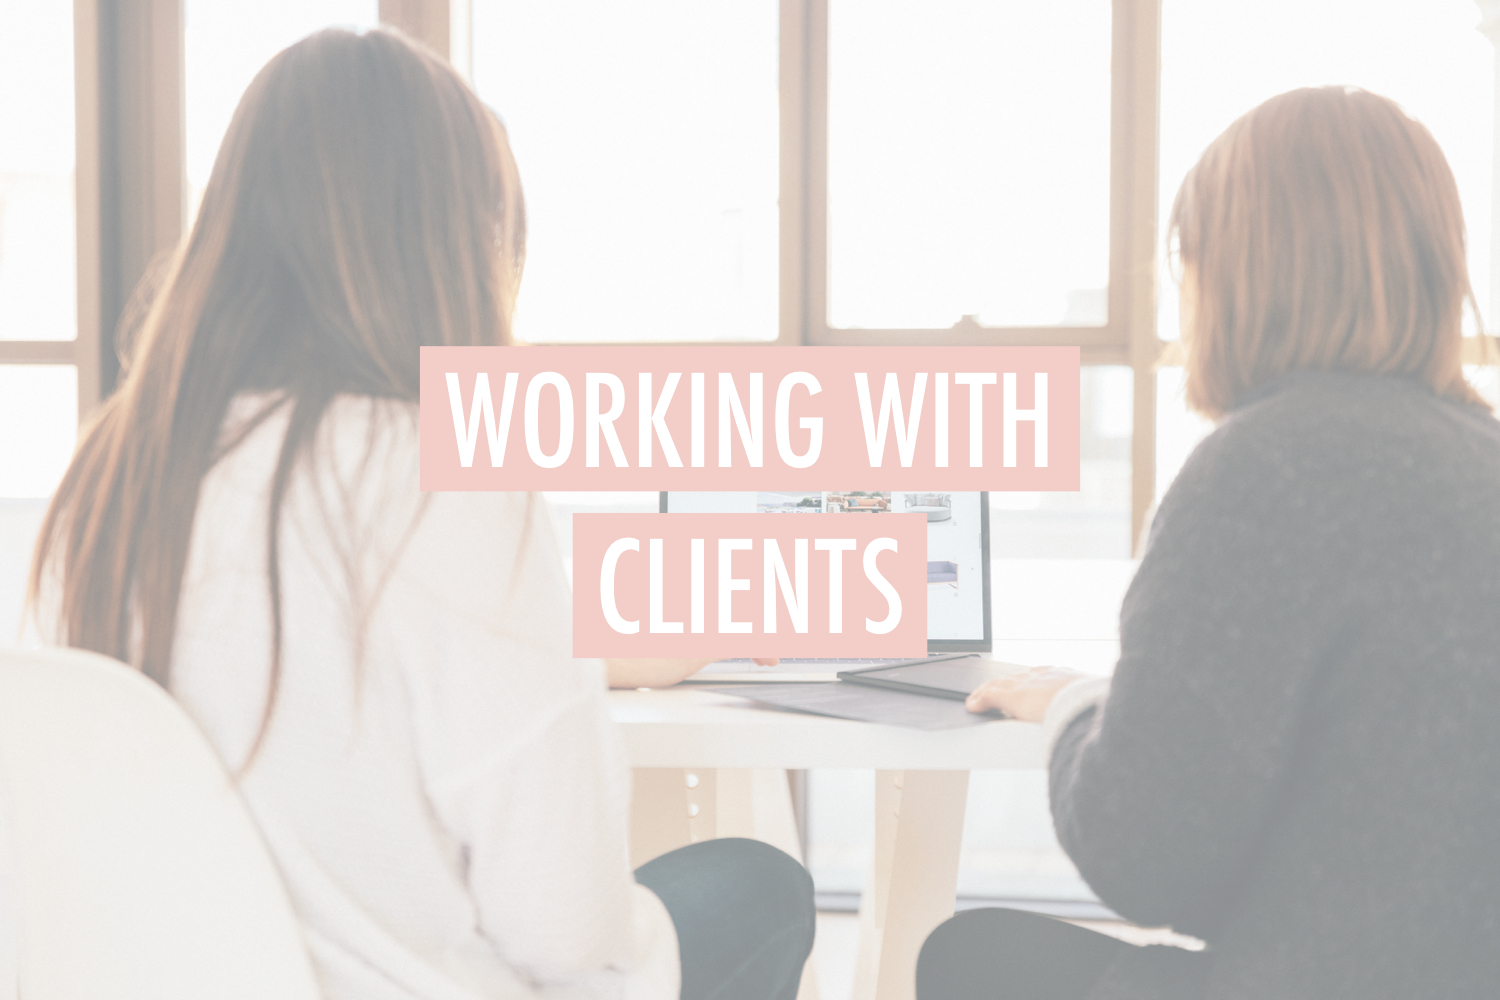 Working with clients - stacy kessler